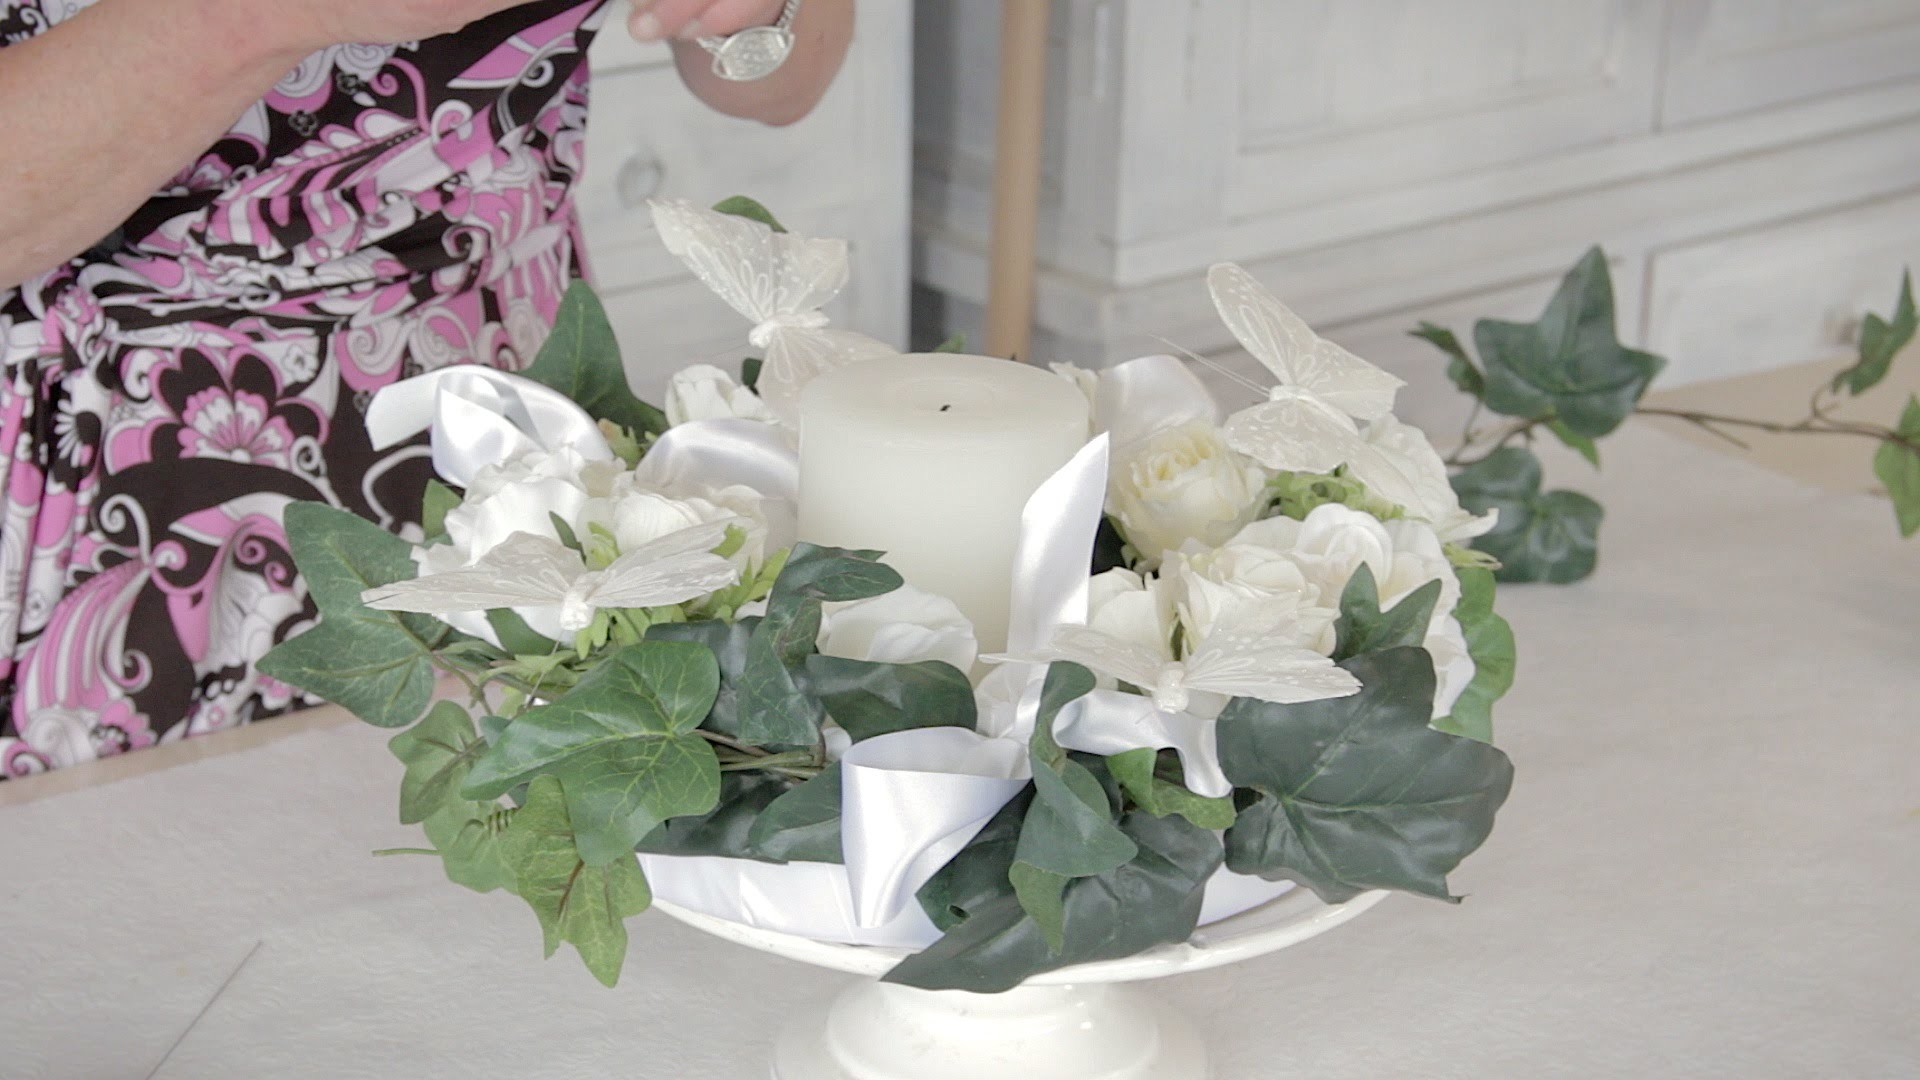 Wedding Floristry Tutorial: How to make a Wedding Table Wreath